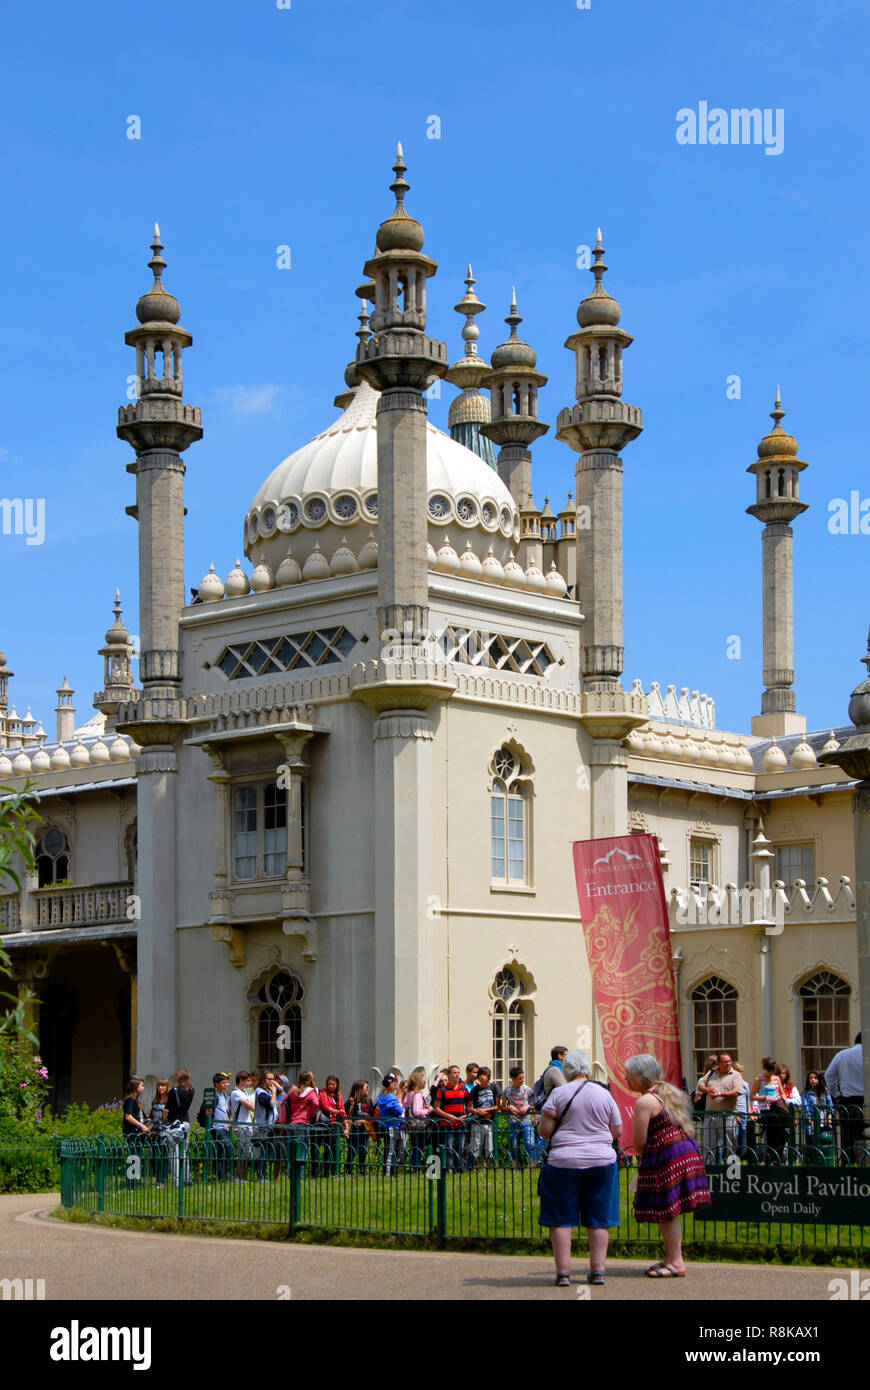 The Royal Pavilion, Brighton, East Sussex, England - Stock Image